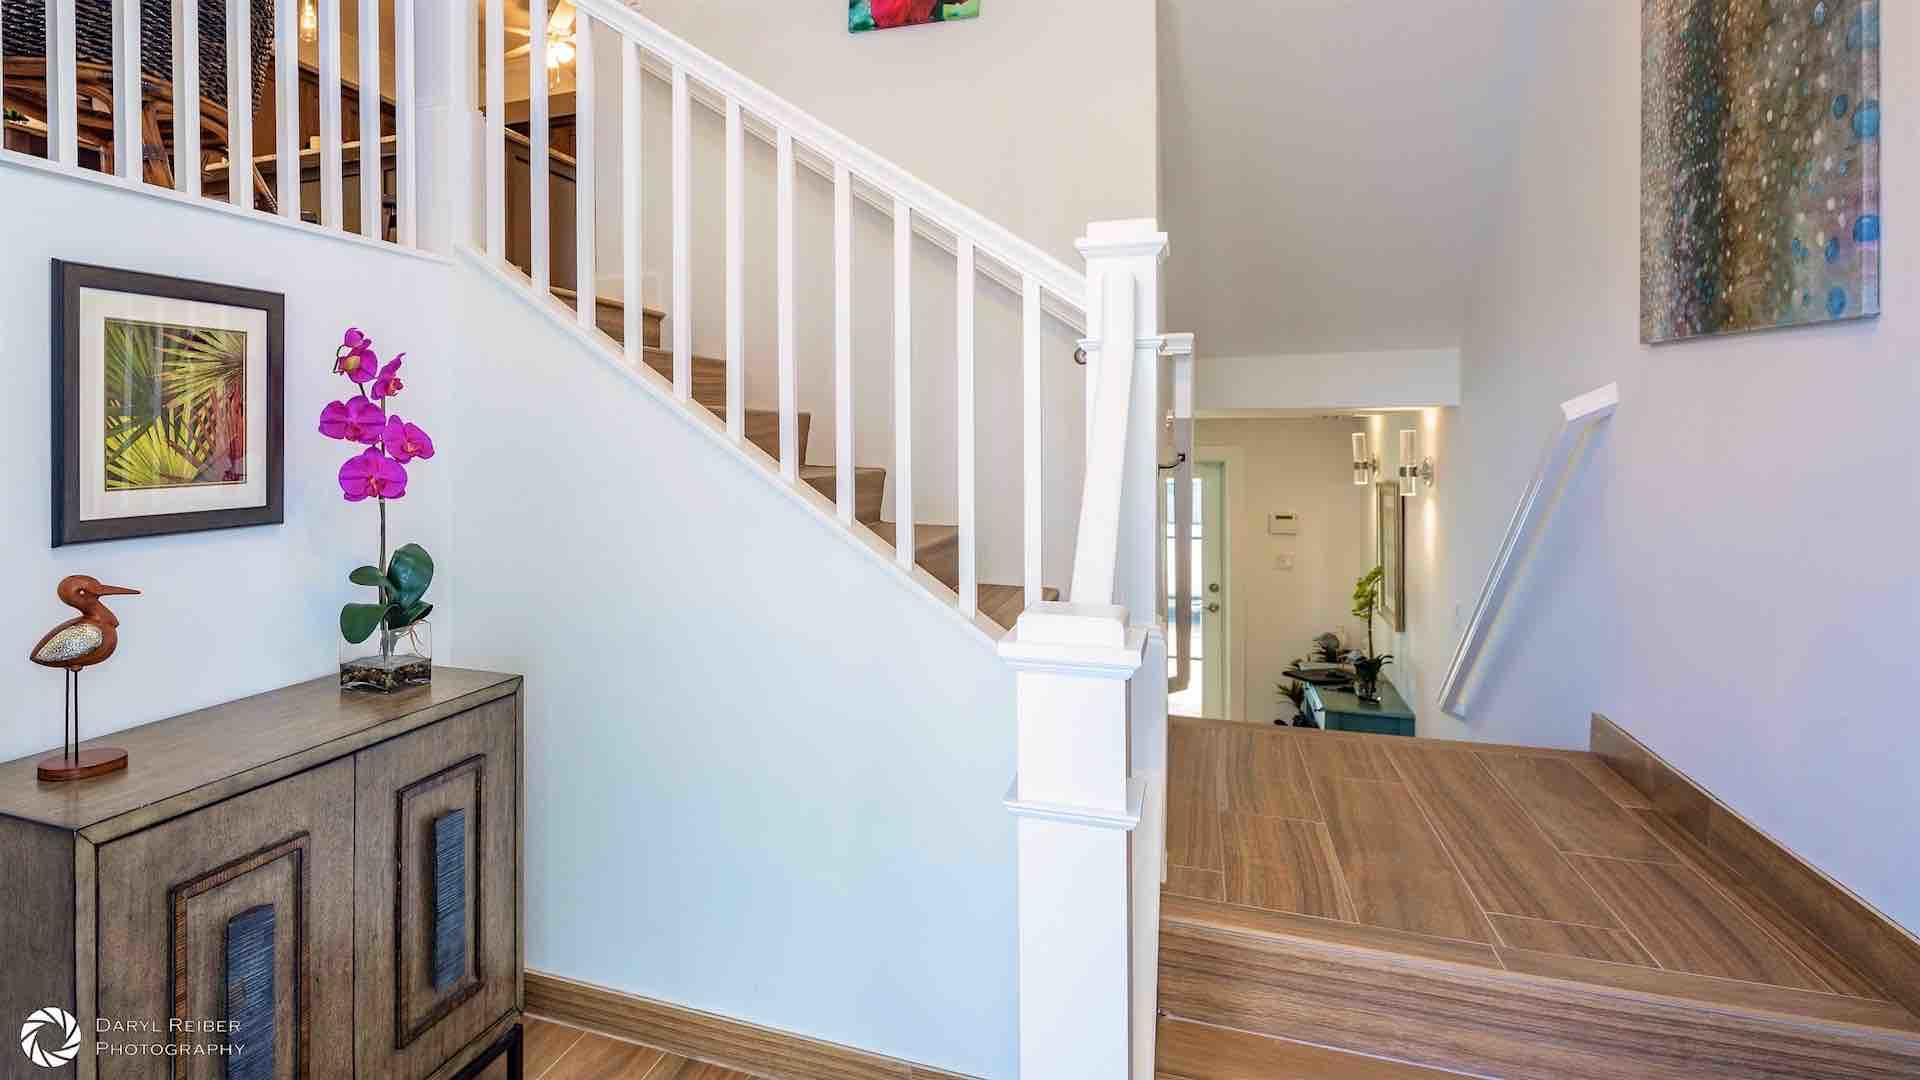 The entry foyer allows you to take the private elevator or the stairs...